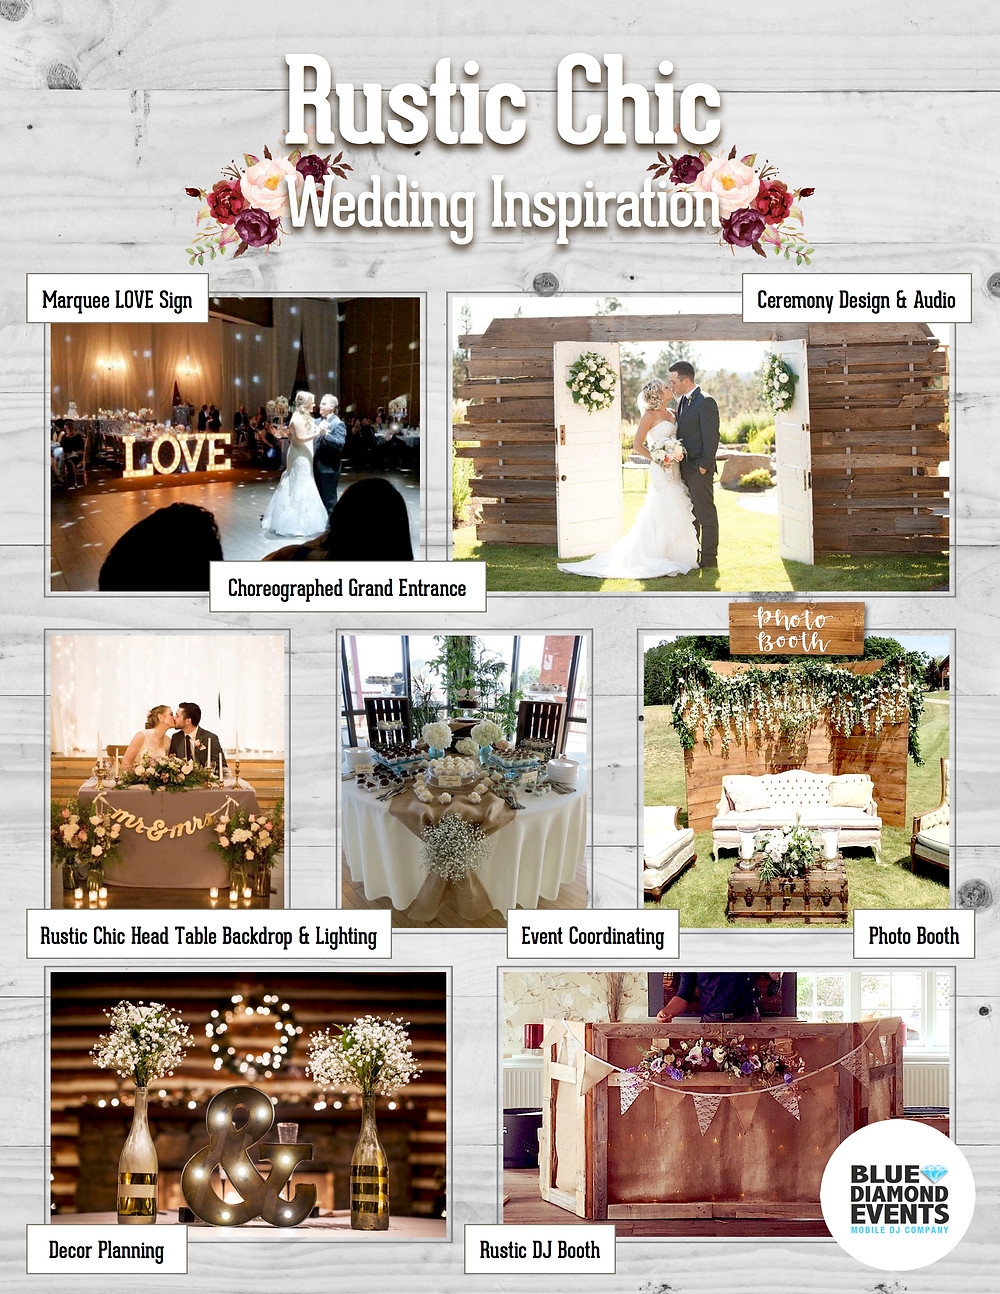 Rustic Chic, Wedding Inspiration, Ceremony Design, Ceremony Audio, Marquee LOVE Sign, Photo Booth, Event Coordinating, Backdrop, Lighting, DJ